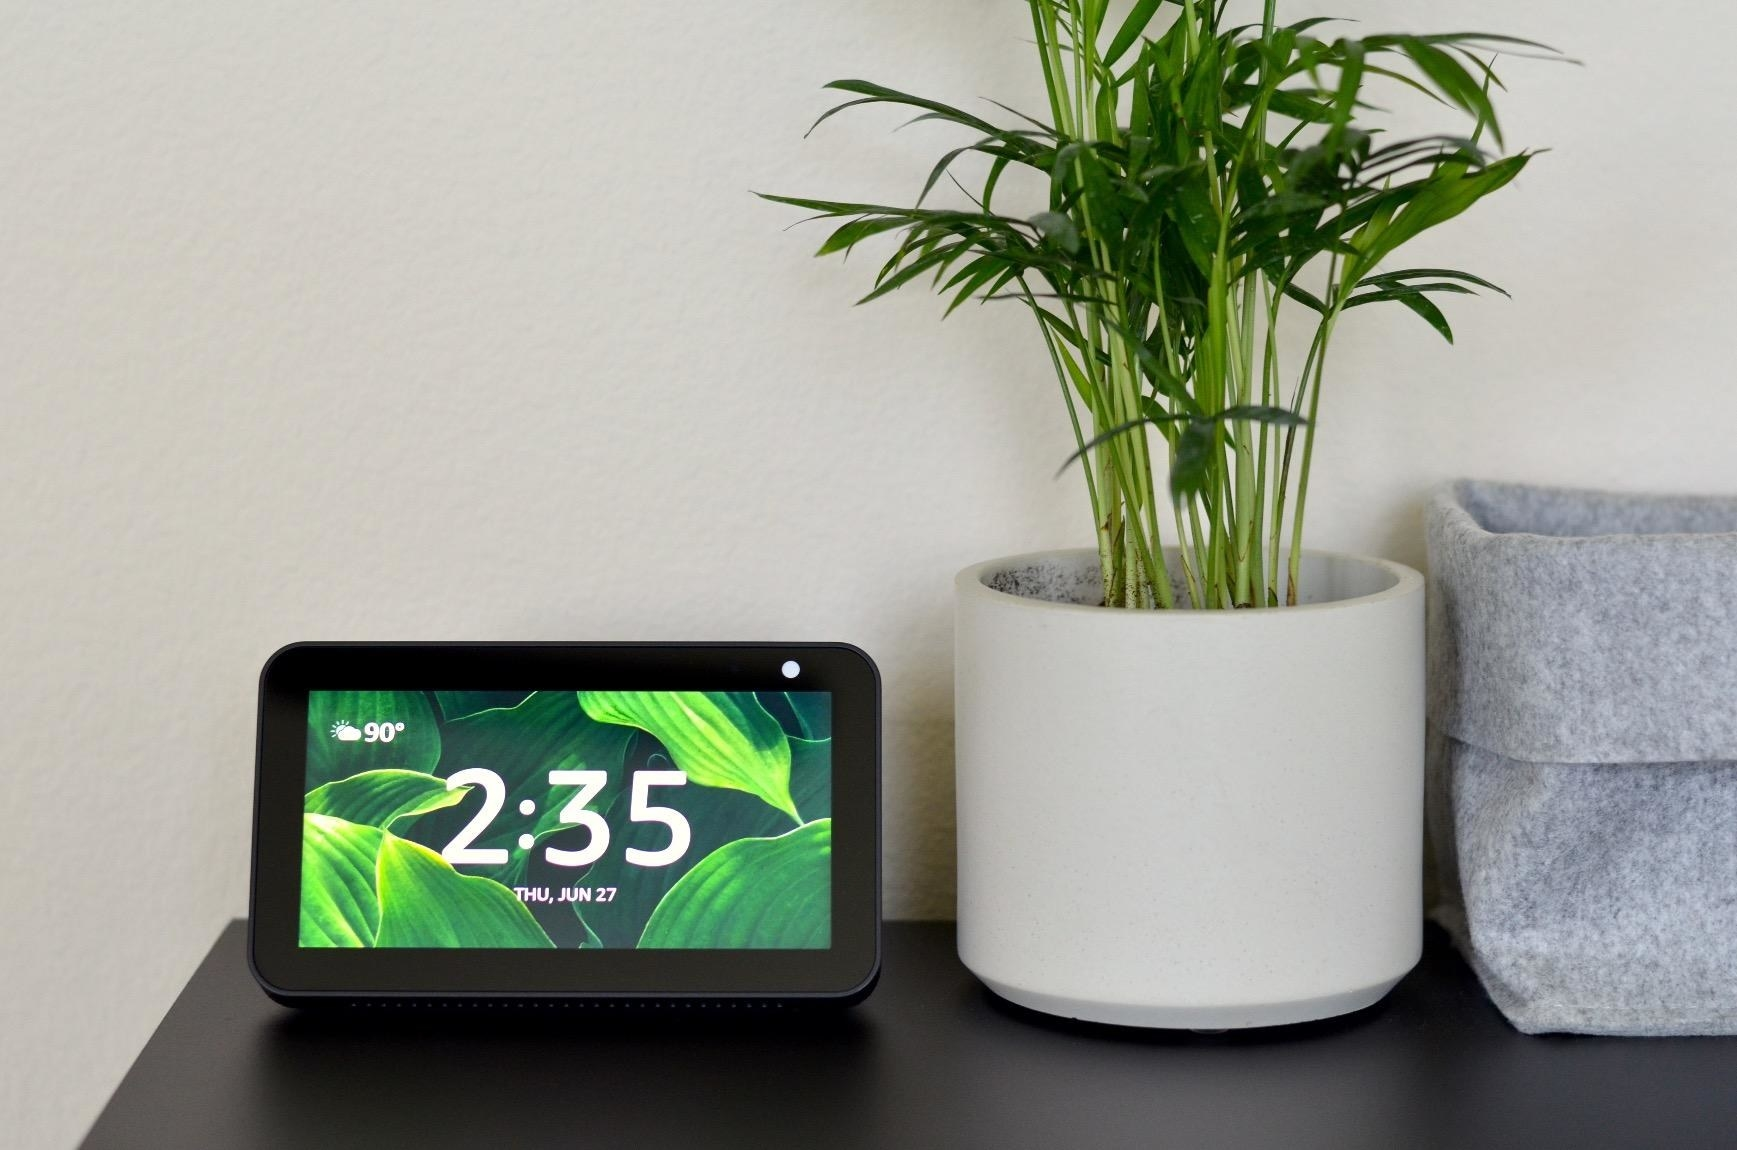 Amazon Echo Show 5 on table next to plant